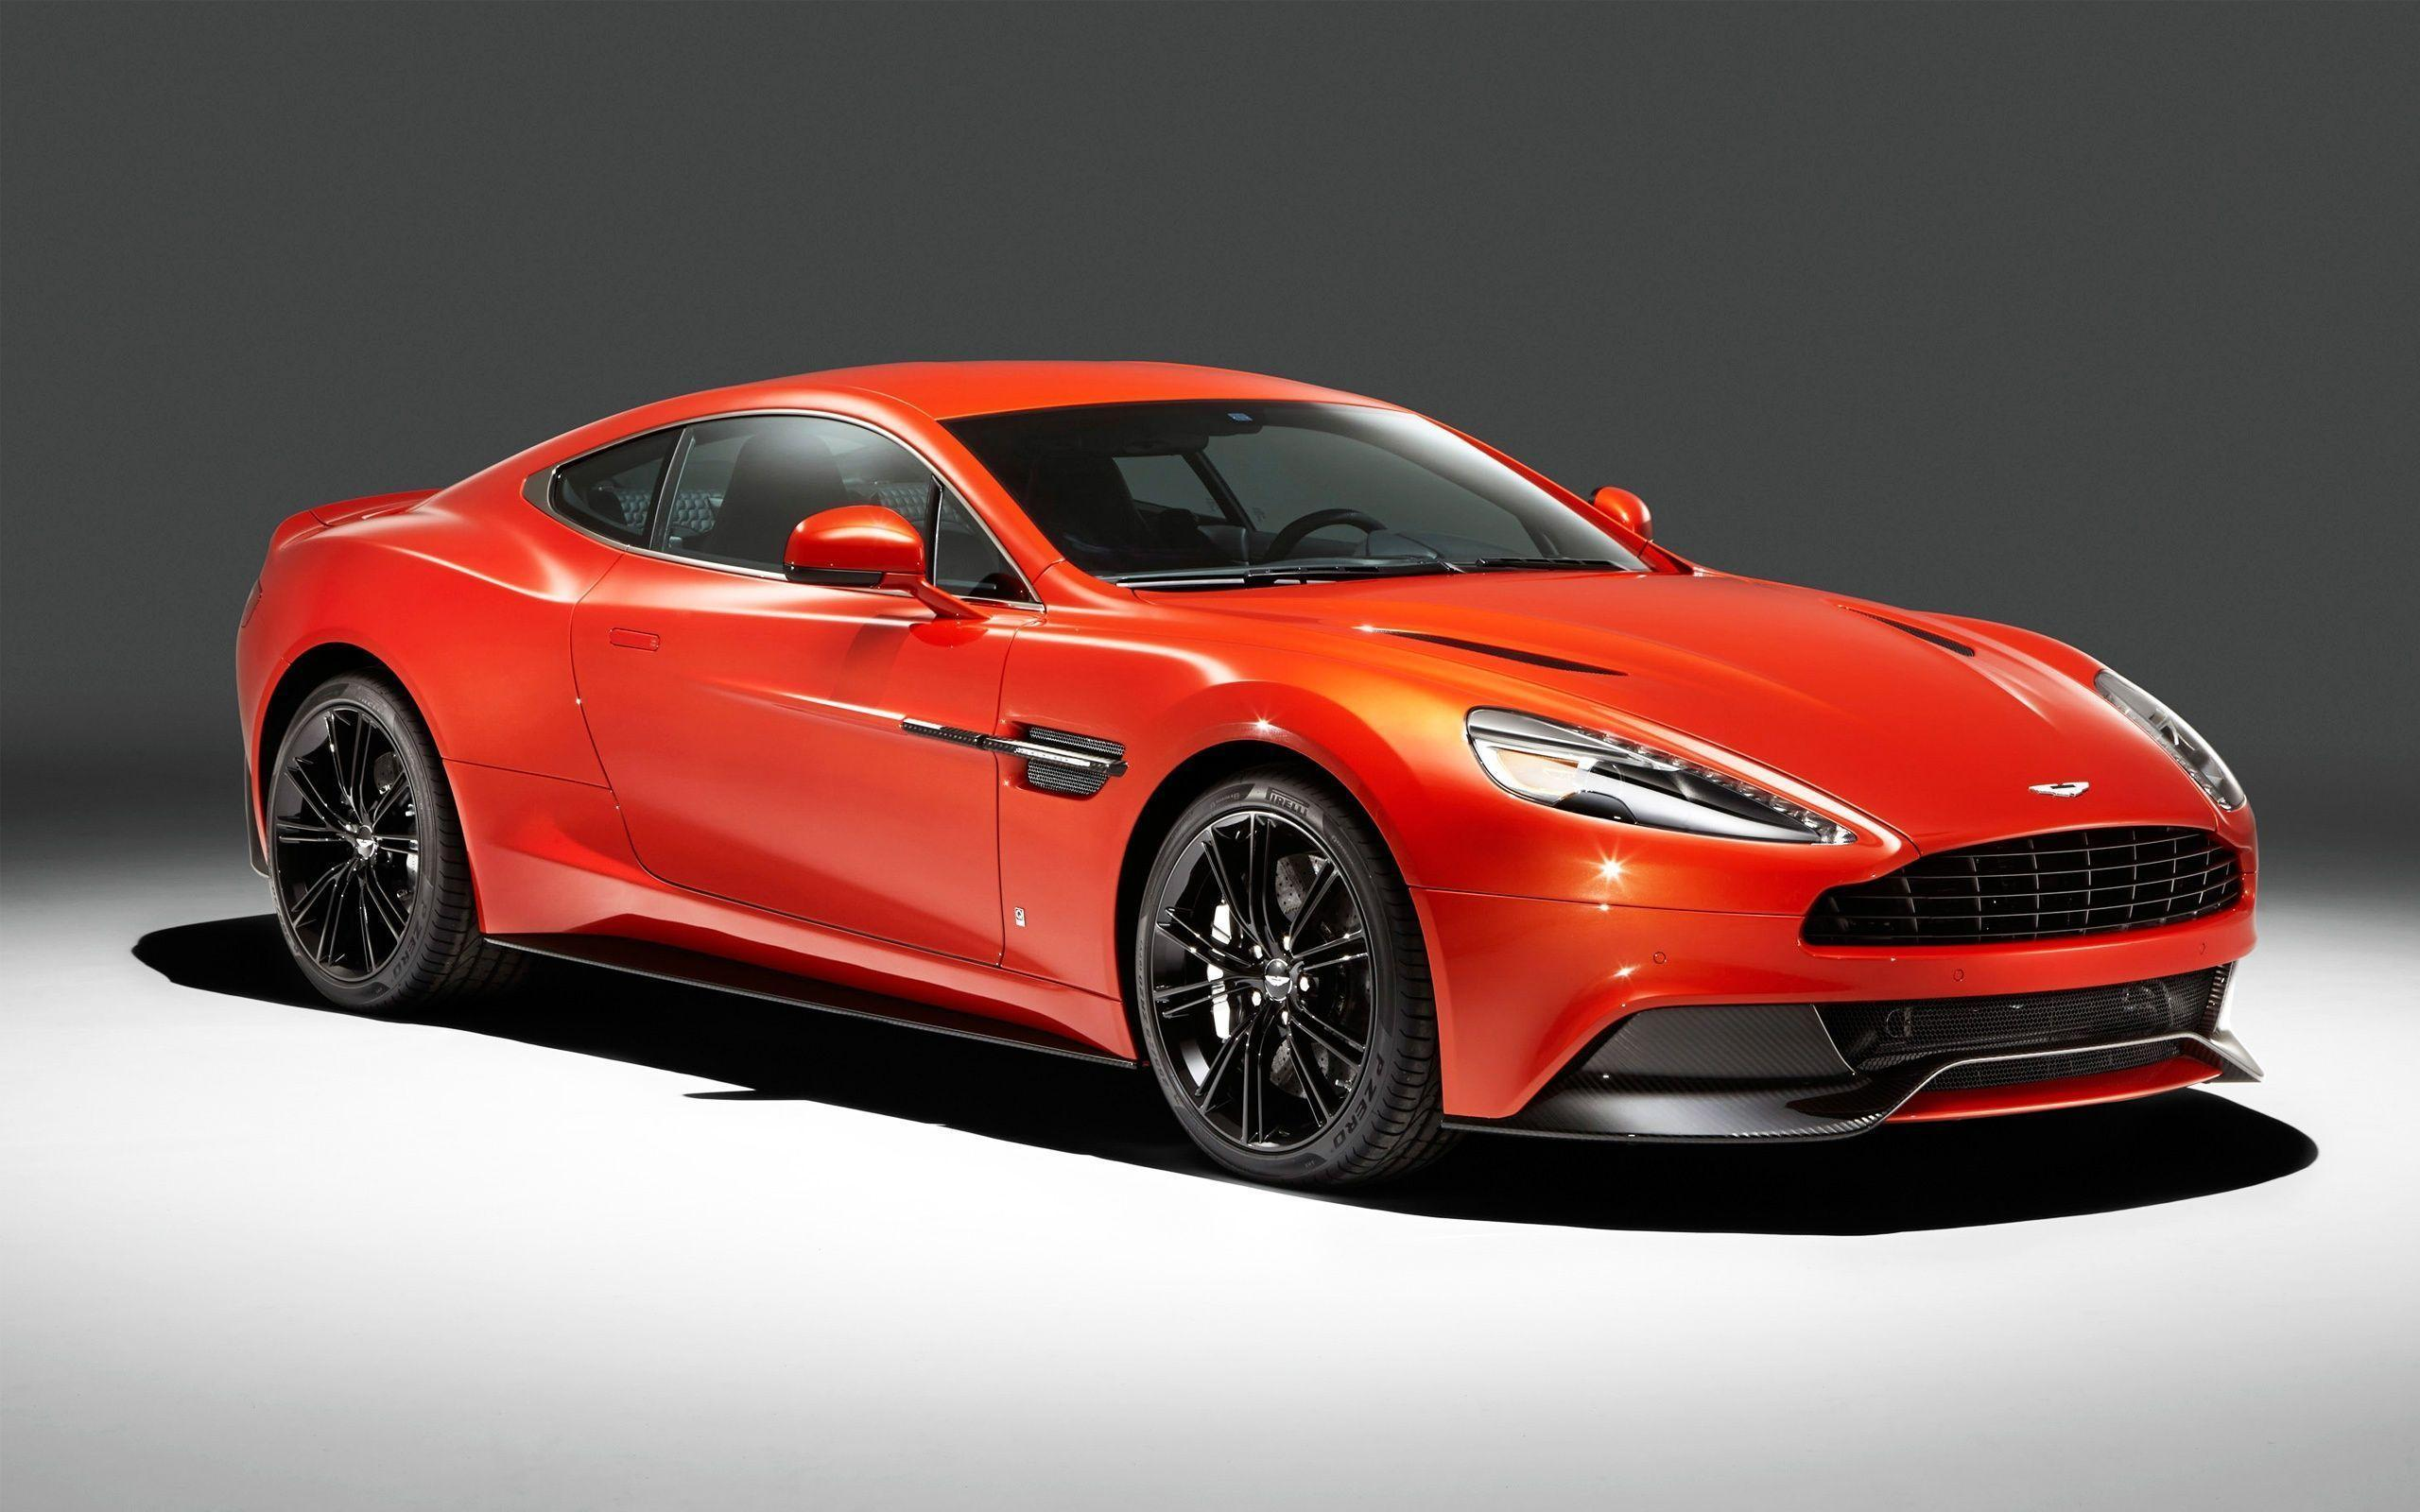 Aston Martin Vanquish Backgrounds Image HD Wallpapers